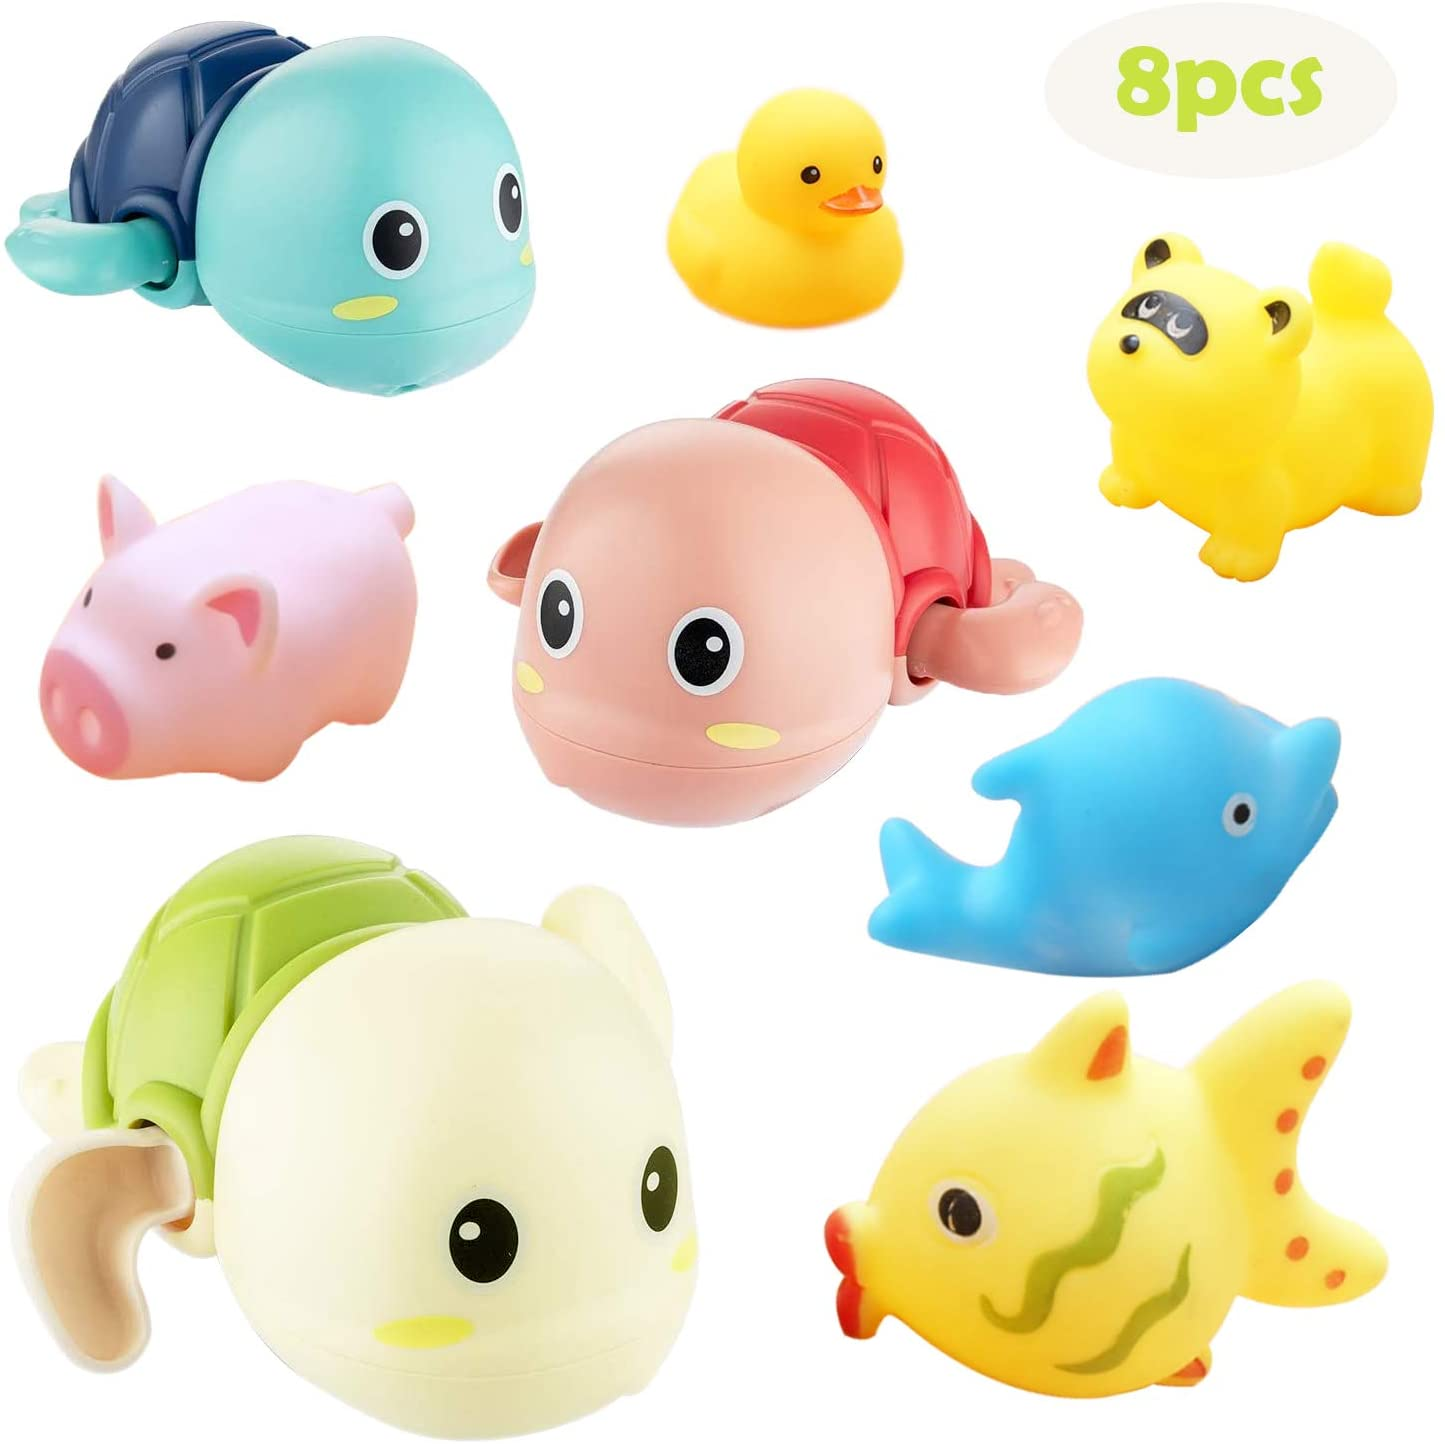 AFTWO Kids Baby Bath Toys,Wind up Bathtub Pool Toys Multi-Colors Swimming Turtle and Squirts Fun Bath Toys Cute Water Playset for Kids Boys Girls